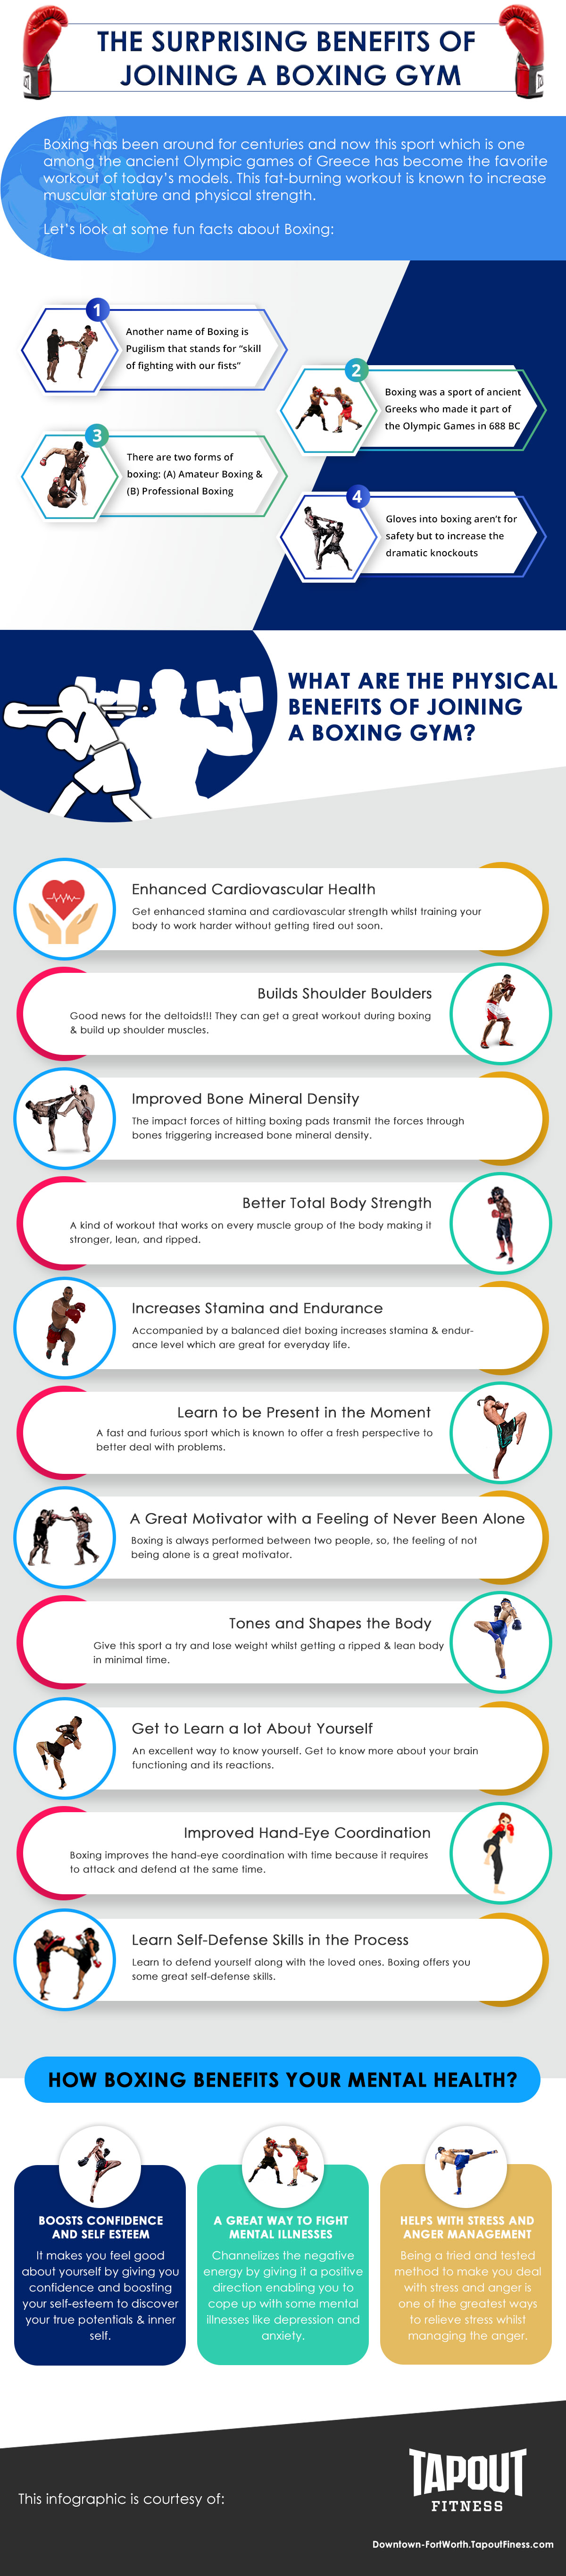 Surprising Benefits of Joining Boxing Gym - Infographic